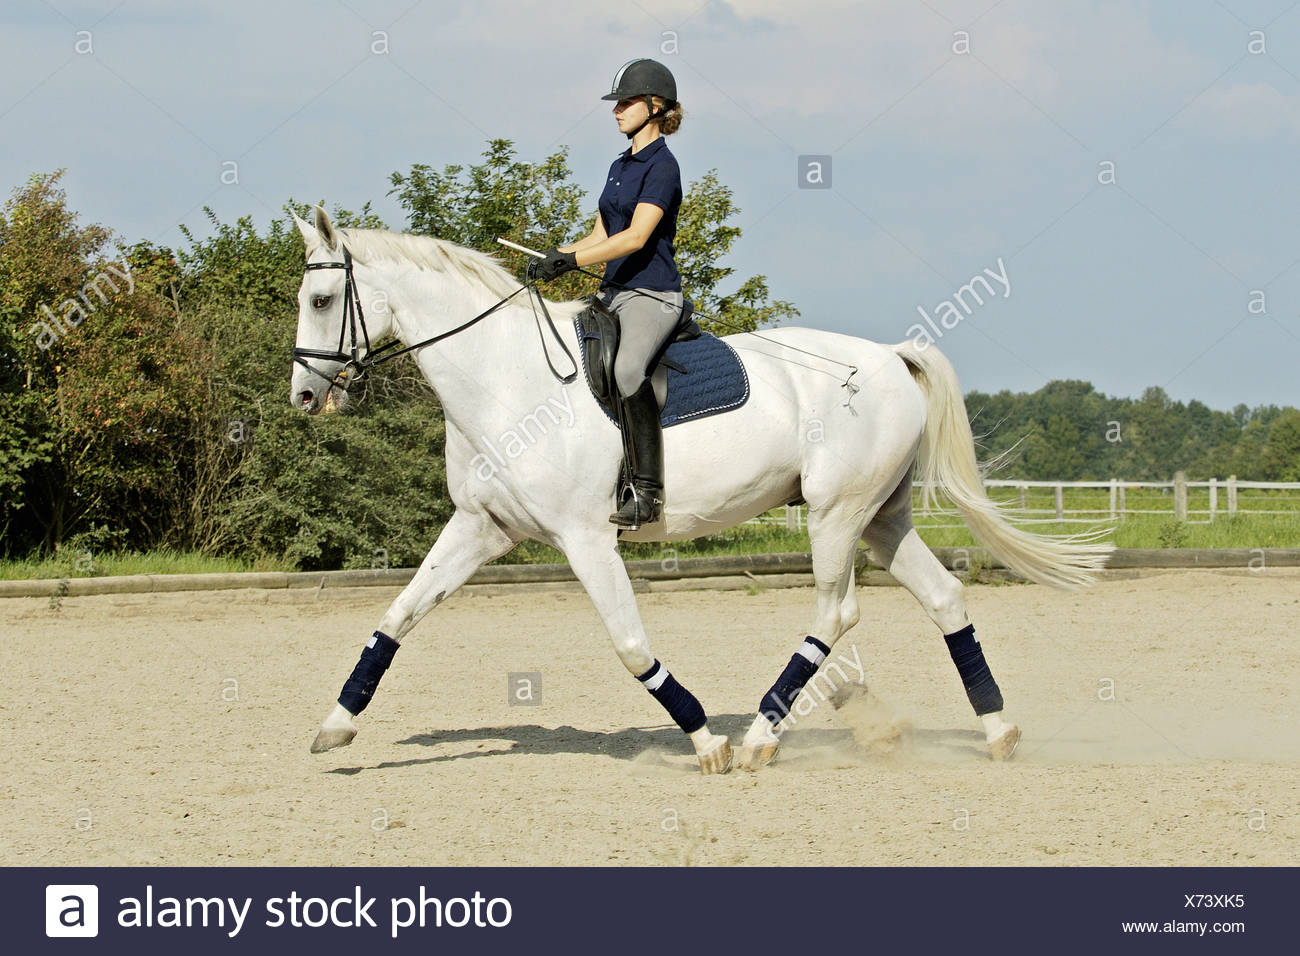 Young Dressage Rider On White Horse Stock Photo Alamy